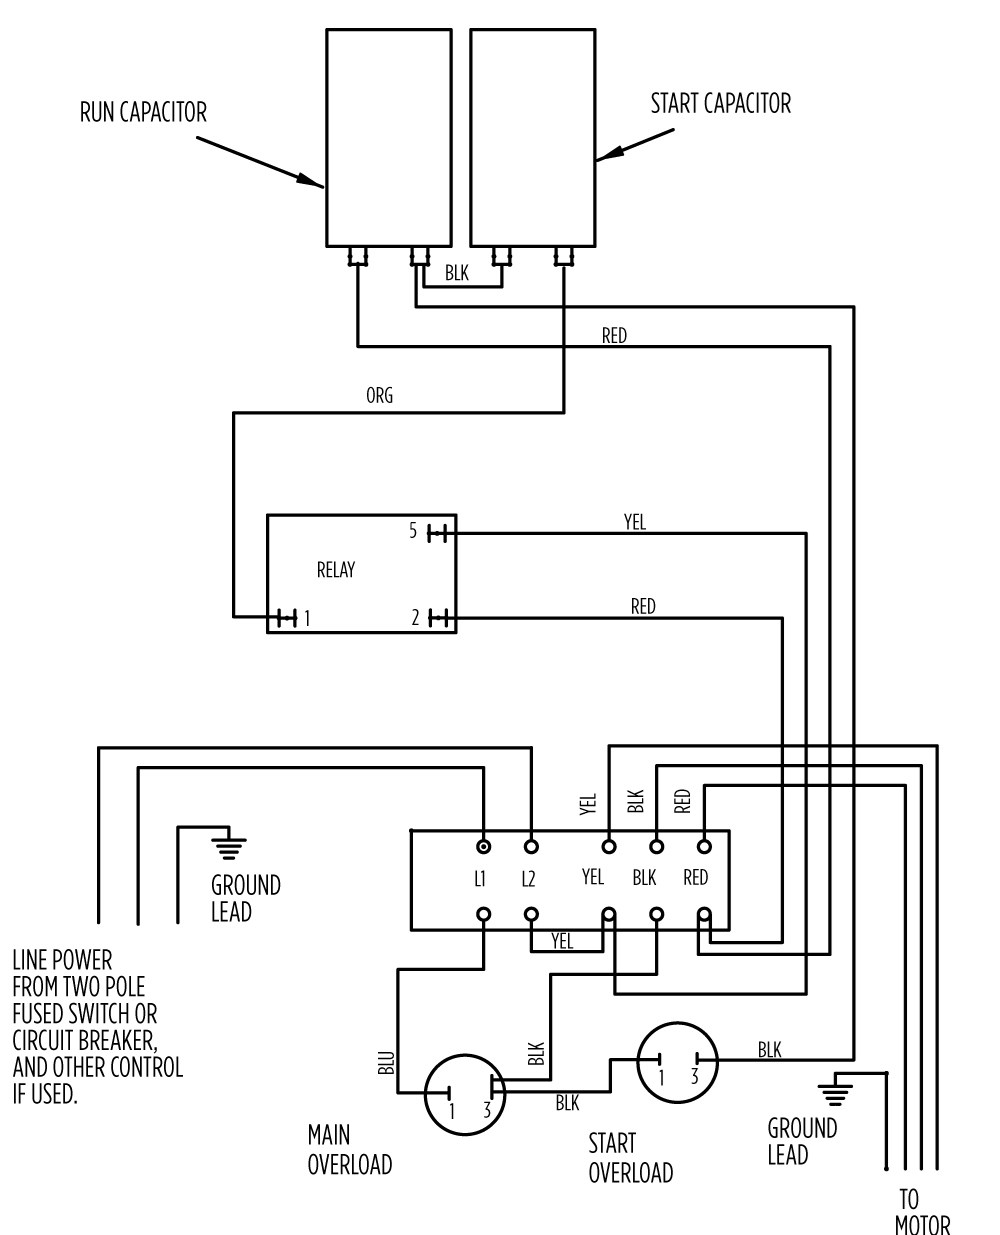 2 hp standard 282 301 8110_aim gallery?format=jpg&quality=80 aim manual page 55 single phase motors and controls motor photo control wiring diagram at bakdesigns.co